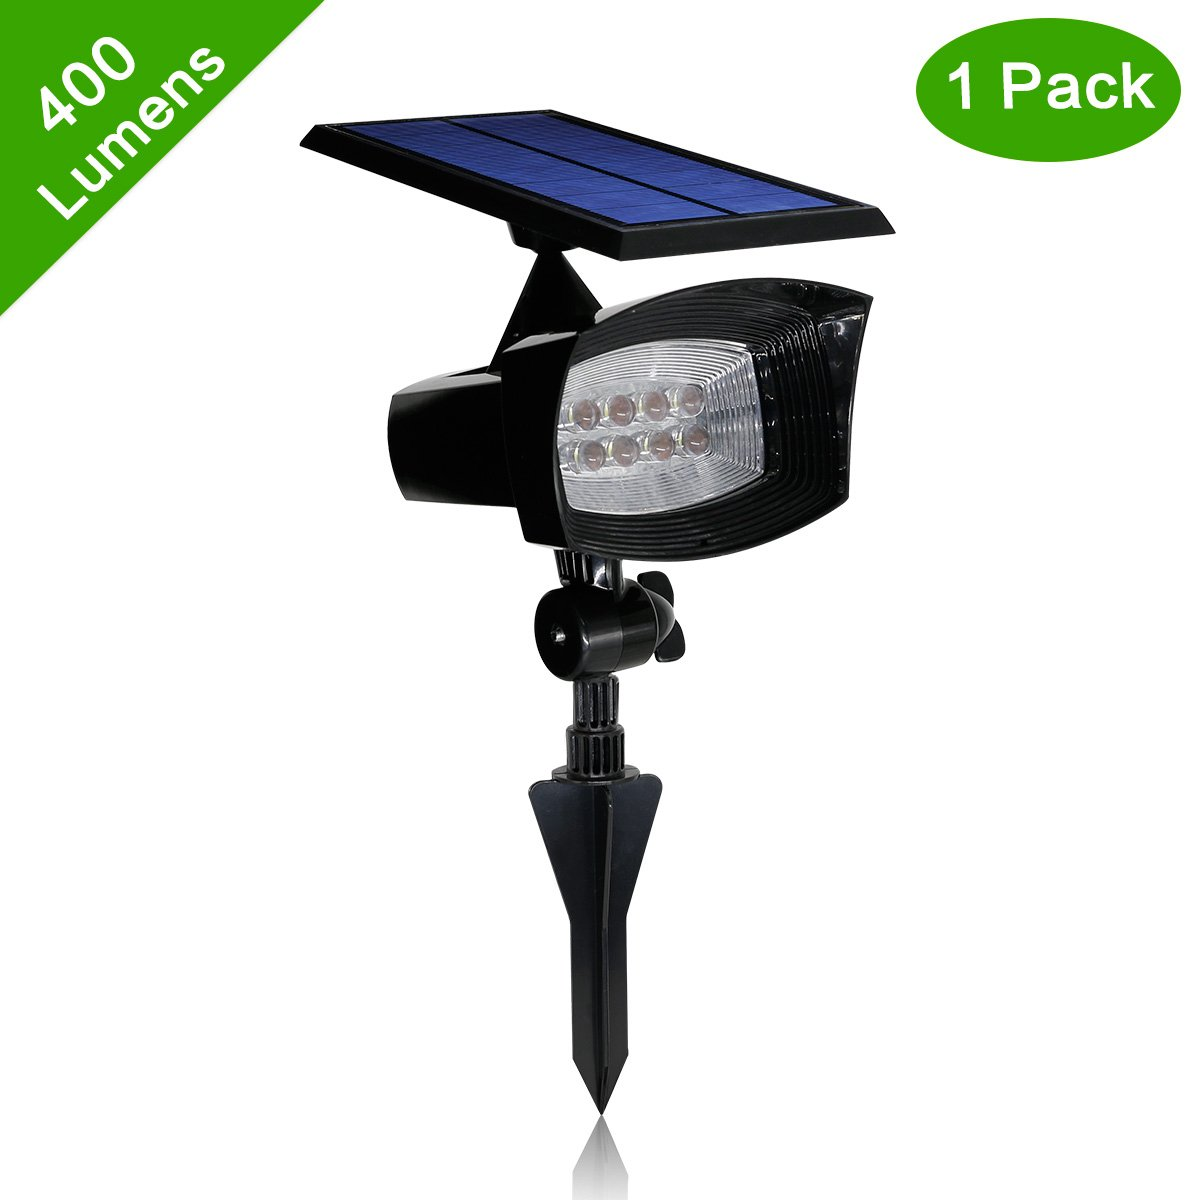 HKYH [400 Lumens 2-in-1] Solar Powered Led Spotlight 2 in1 Installation 8 Enhanced LED Solar Spotlight Waterproof Outdoor Wall Light,Security Lighting, Path Lights, Landscape Solar Flag Pole Light